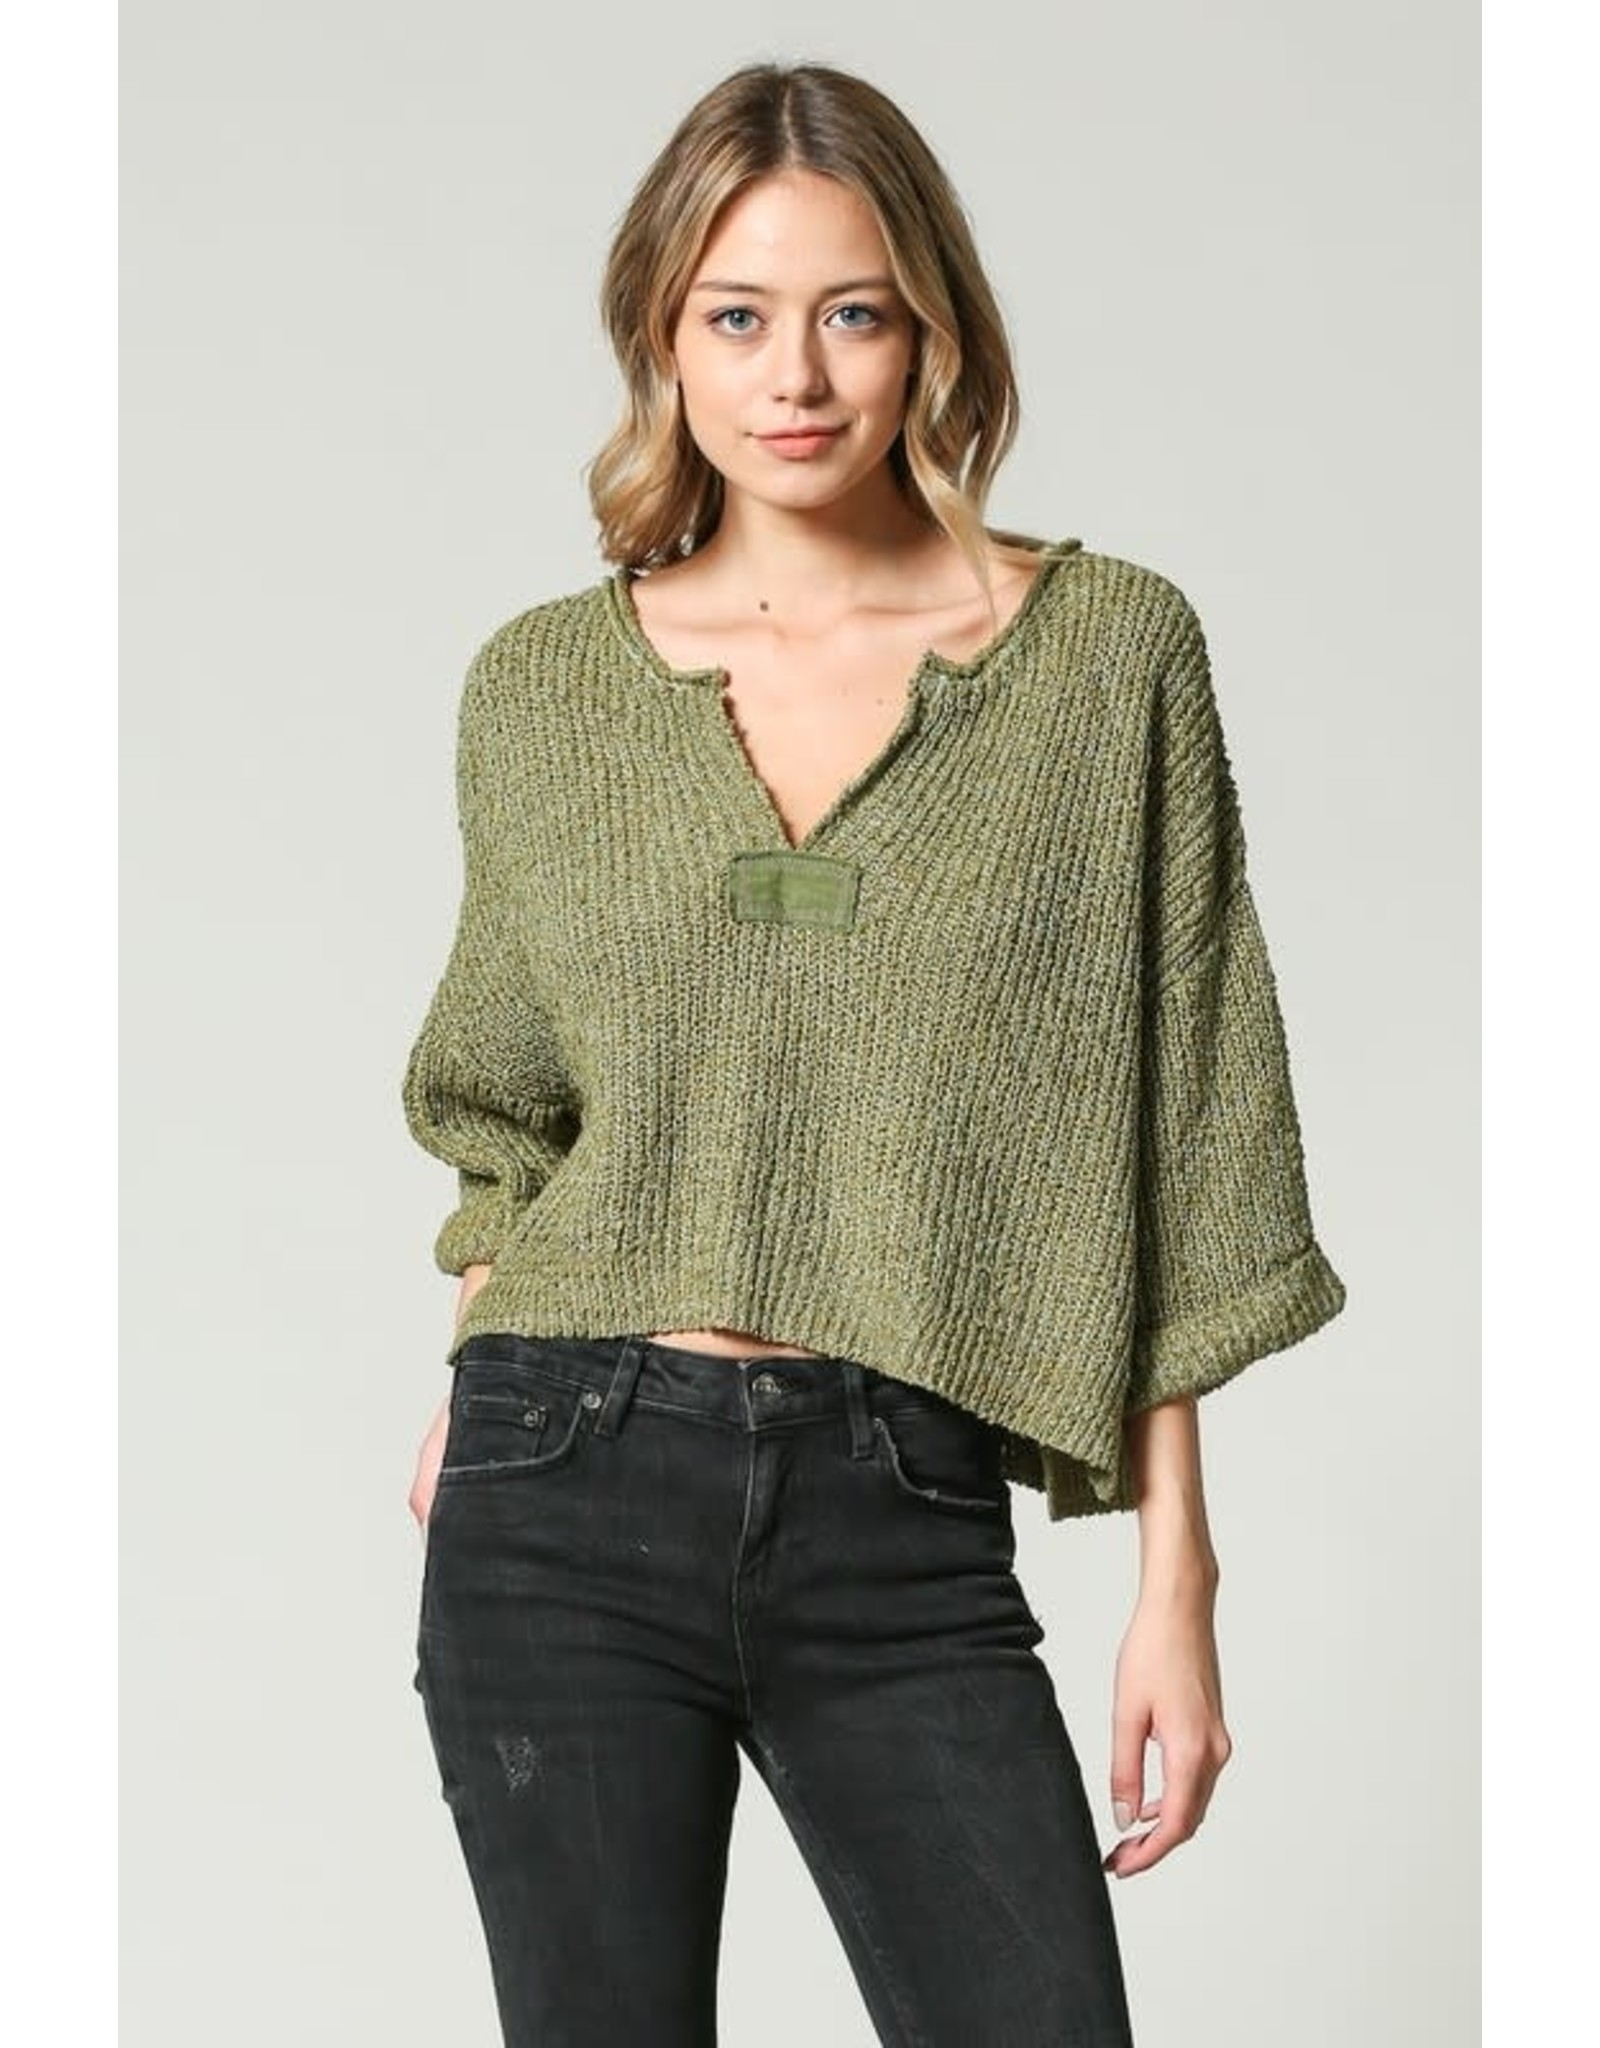 To The Pumpkin Patch Sweater